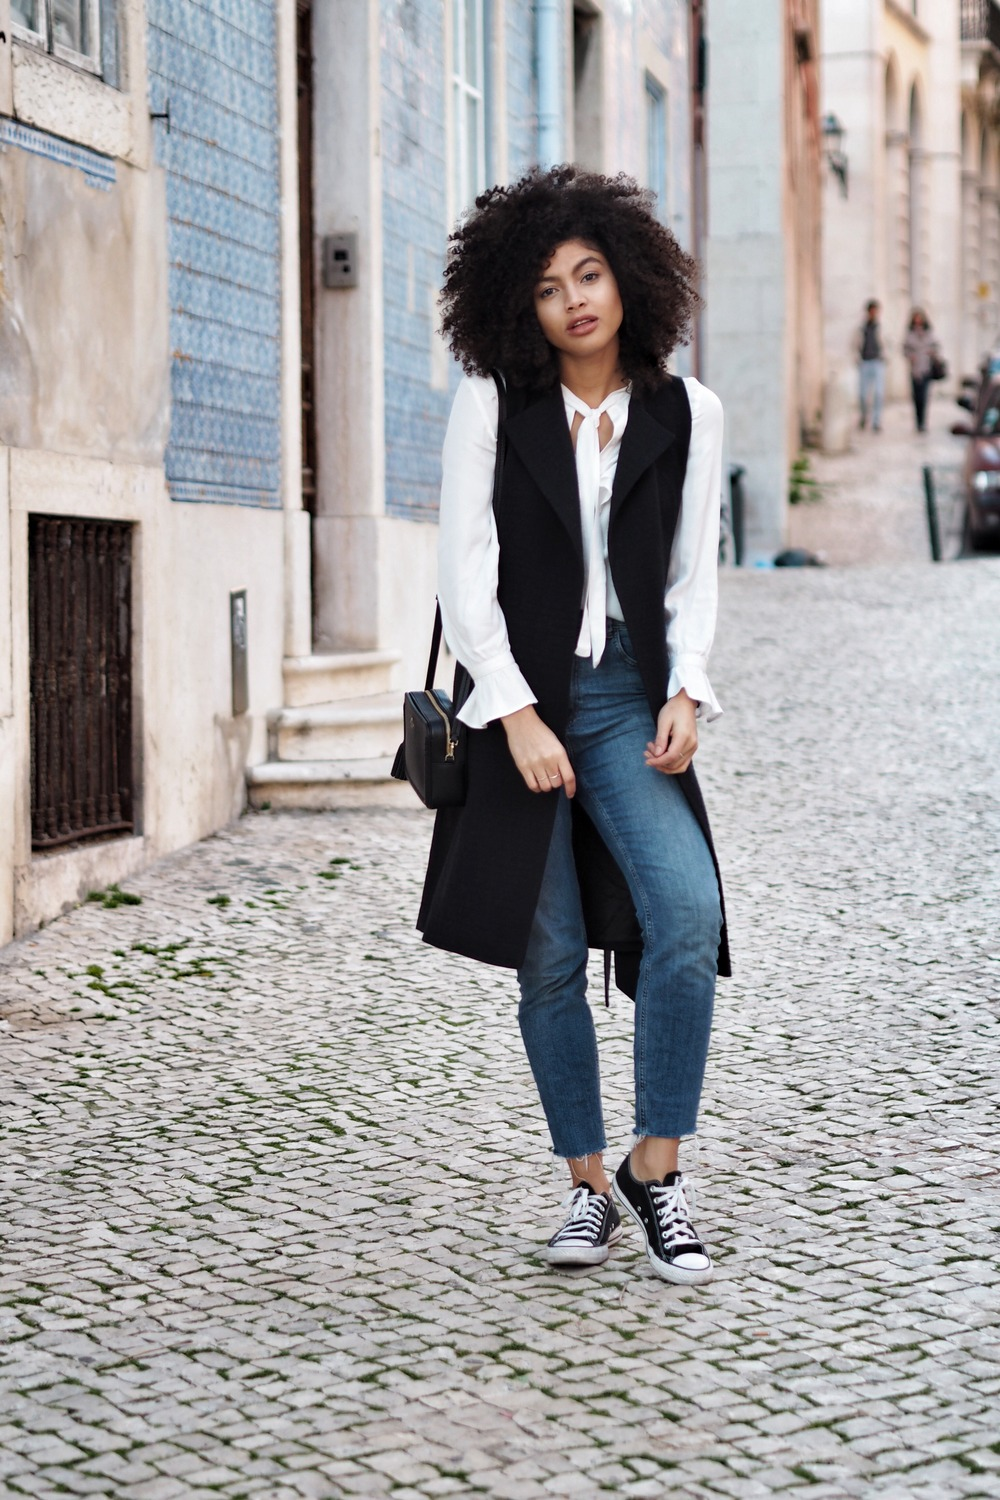 Denim and Navy outfit in Lisbon